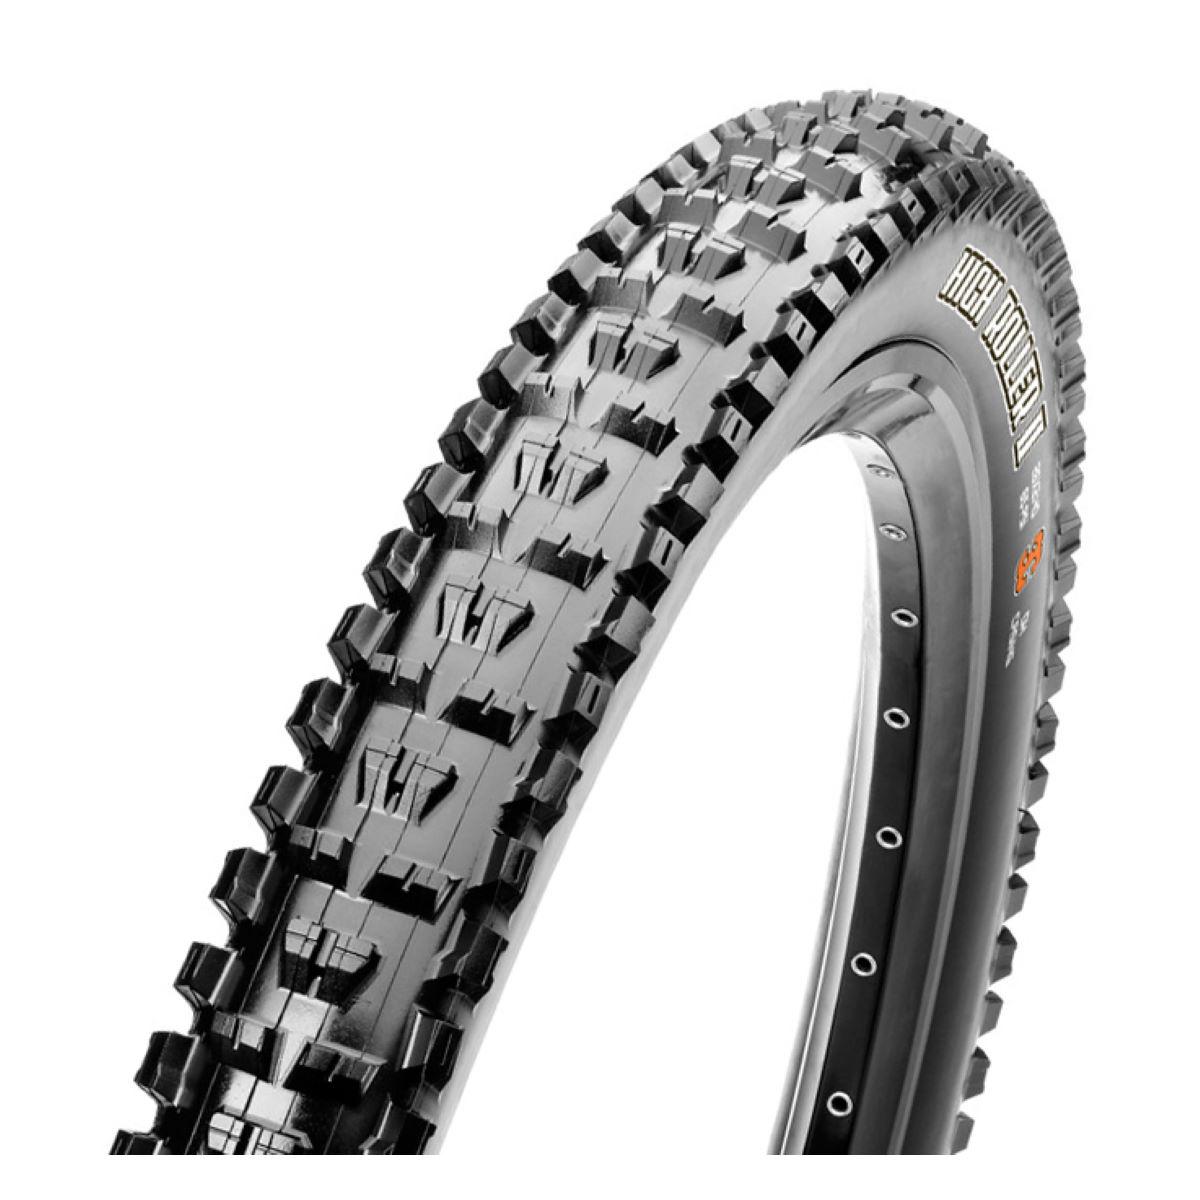 Maxxis Maxxis High Roller II 62a/60a EXO TR Folding MTB Tyre   Tyres